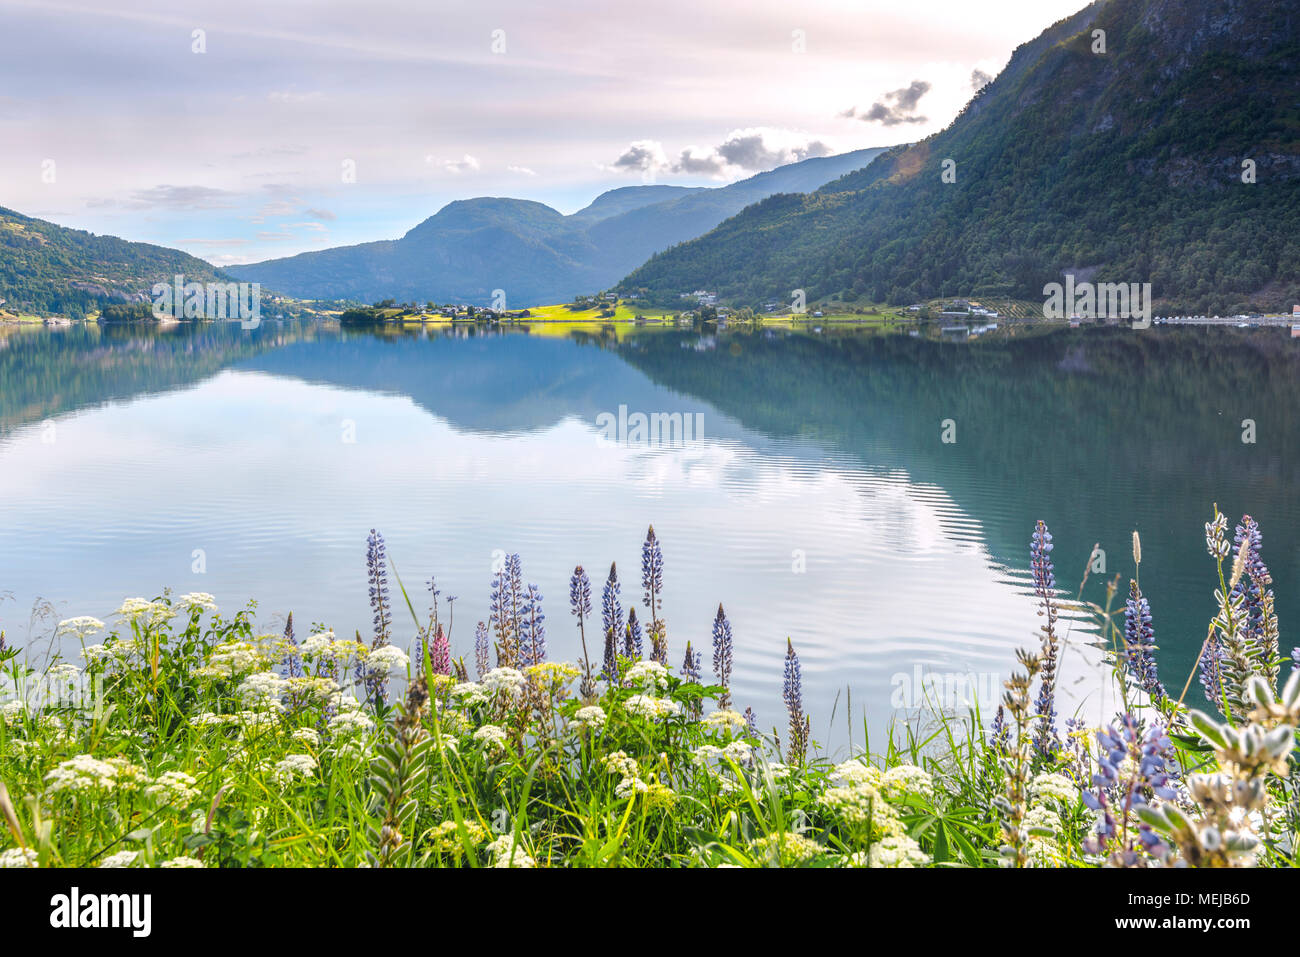 Barsnesfjorden with colourful lupins, Norway, picturesque landscape at the fjord with blooming flowers on the shore, side arm of the Sognefjorden - Stock Image